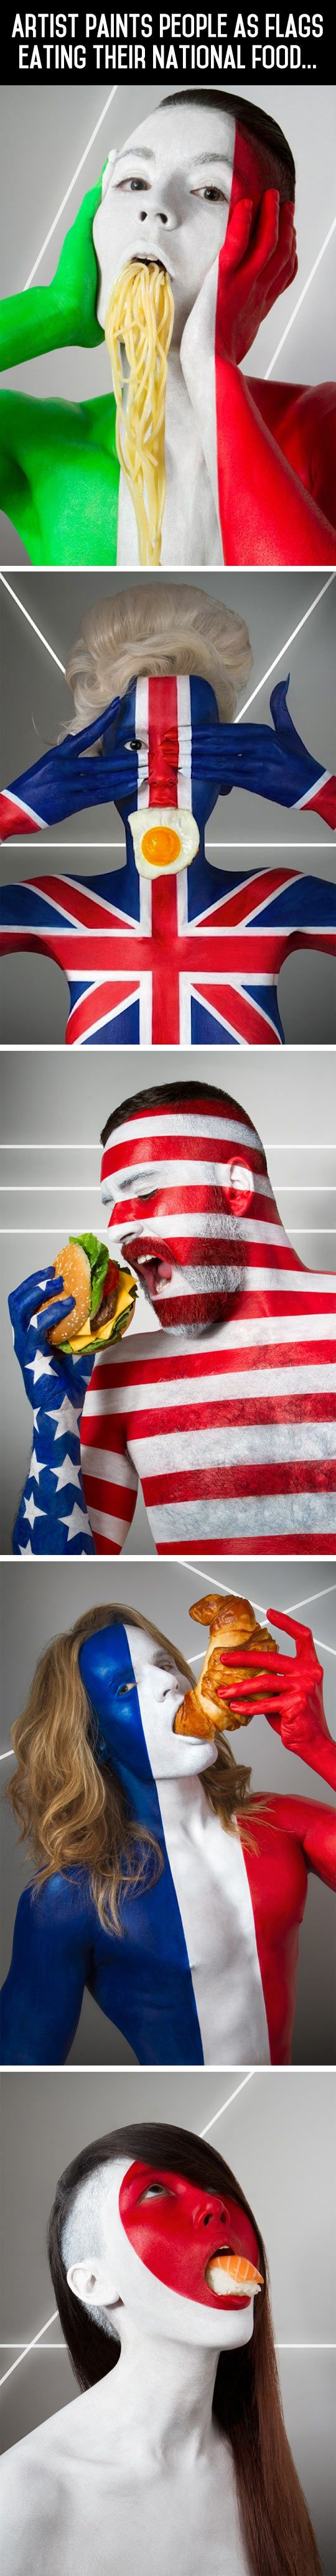 OMG THIS IS AMAZING   and of course America is the most unhealthy  And what is going on with Japan?